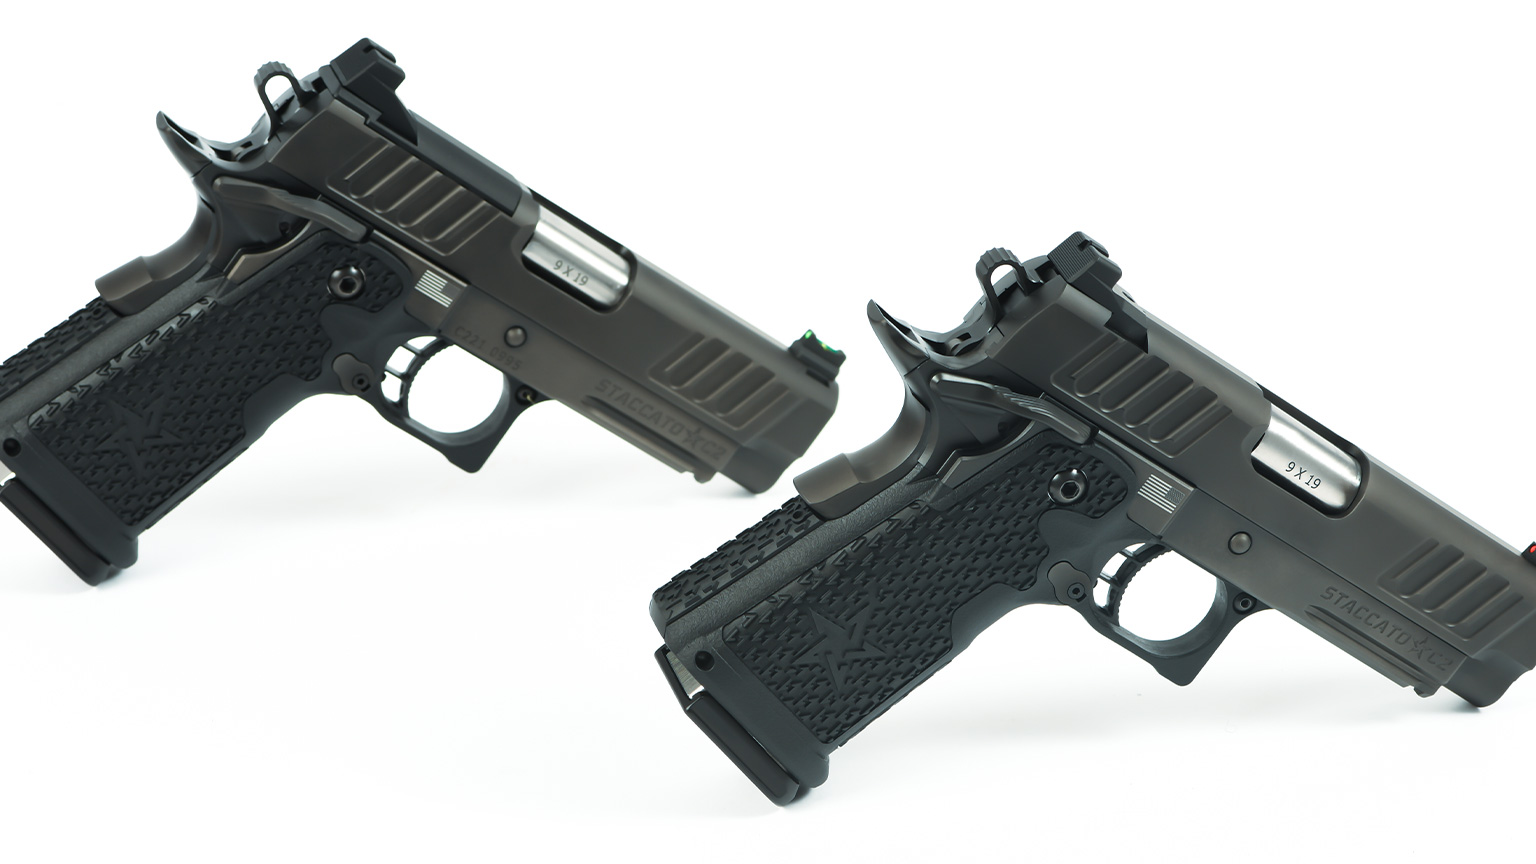 Two Staccato C2 handguns next to each other